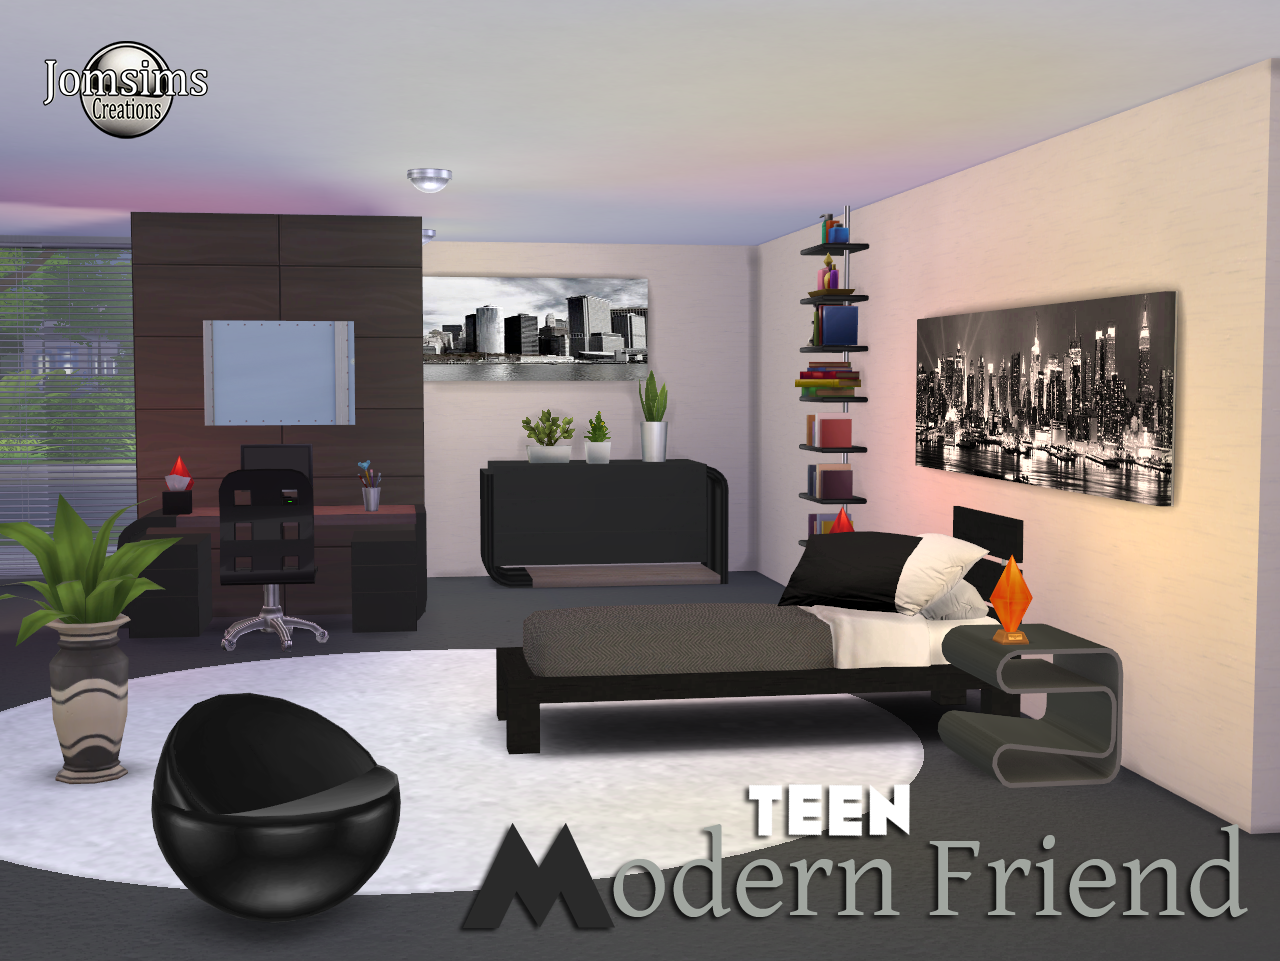 Cool Rooms For Teenagers Jomsimscreations Blog Hello Friends A New Bedroom Sims 4